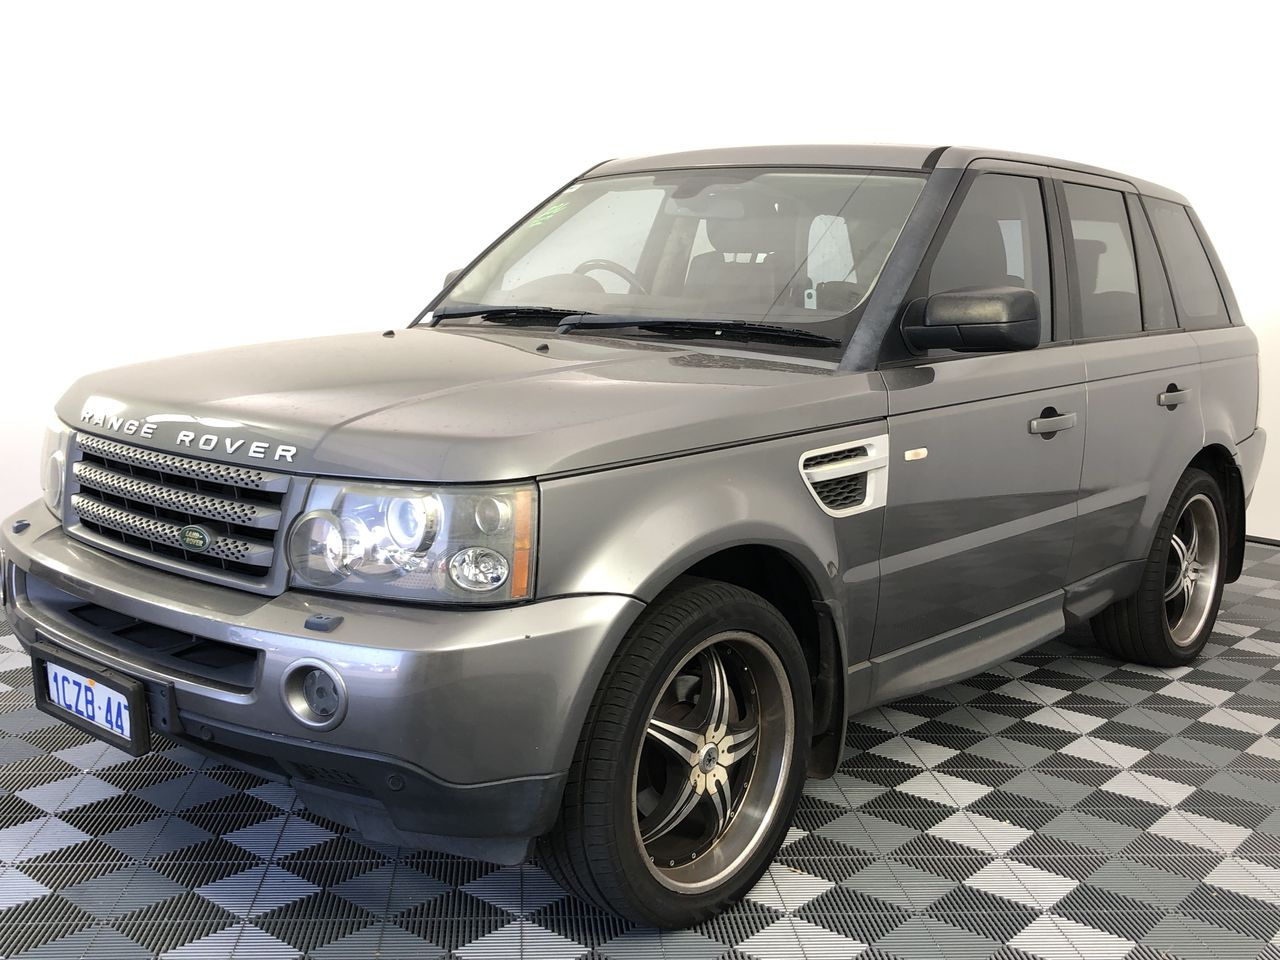 2009 Land Rover Range Rover Sport TDV6 Turbo Diesel Automatic Wagon